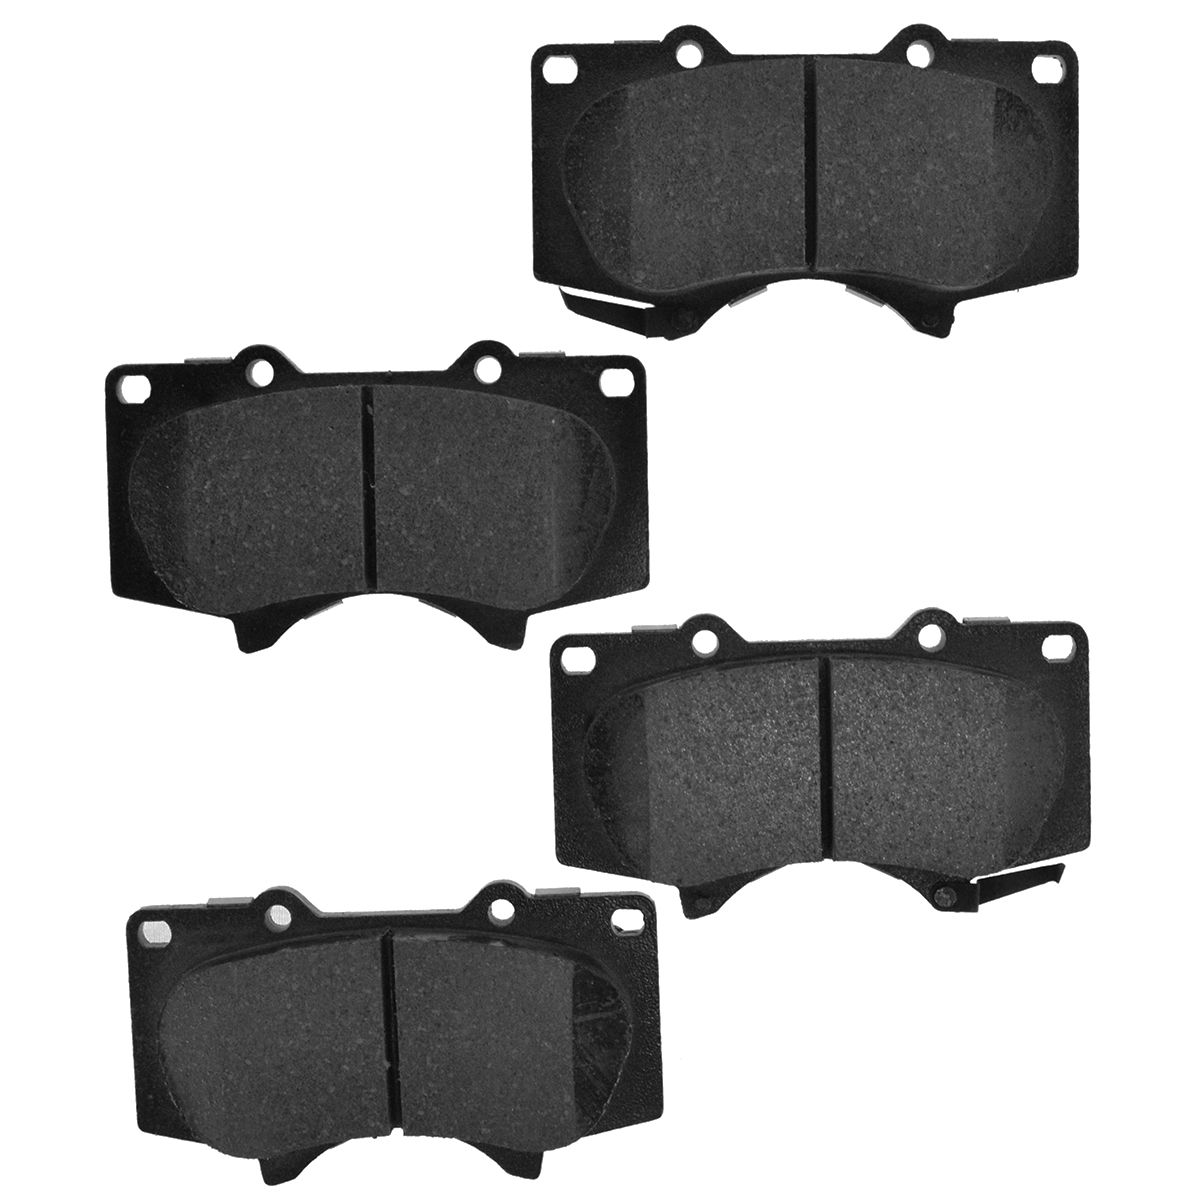 RAYBESTOS Brake Pads Disc Element 3 EHT976H Front Set Kit for Sequoia Tacoma